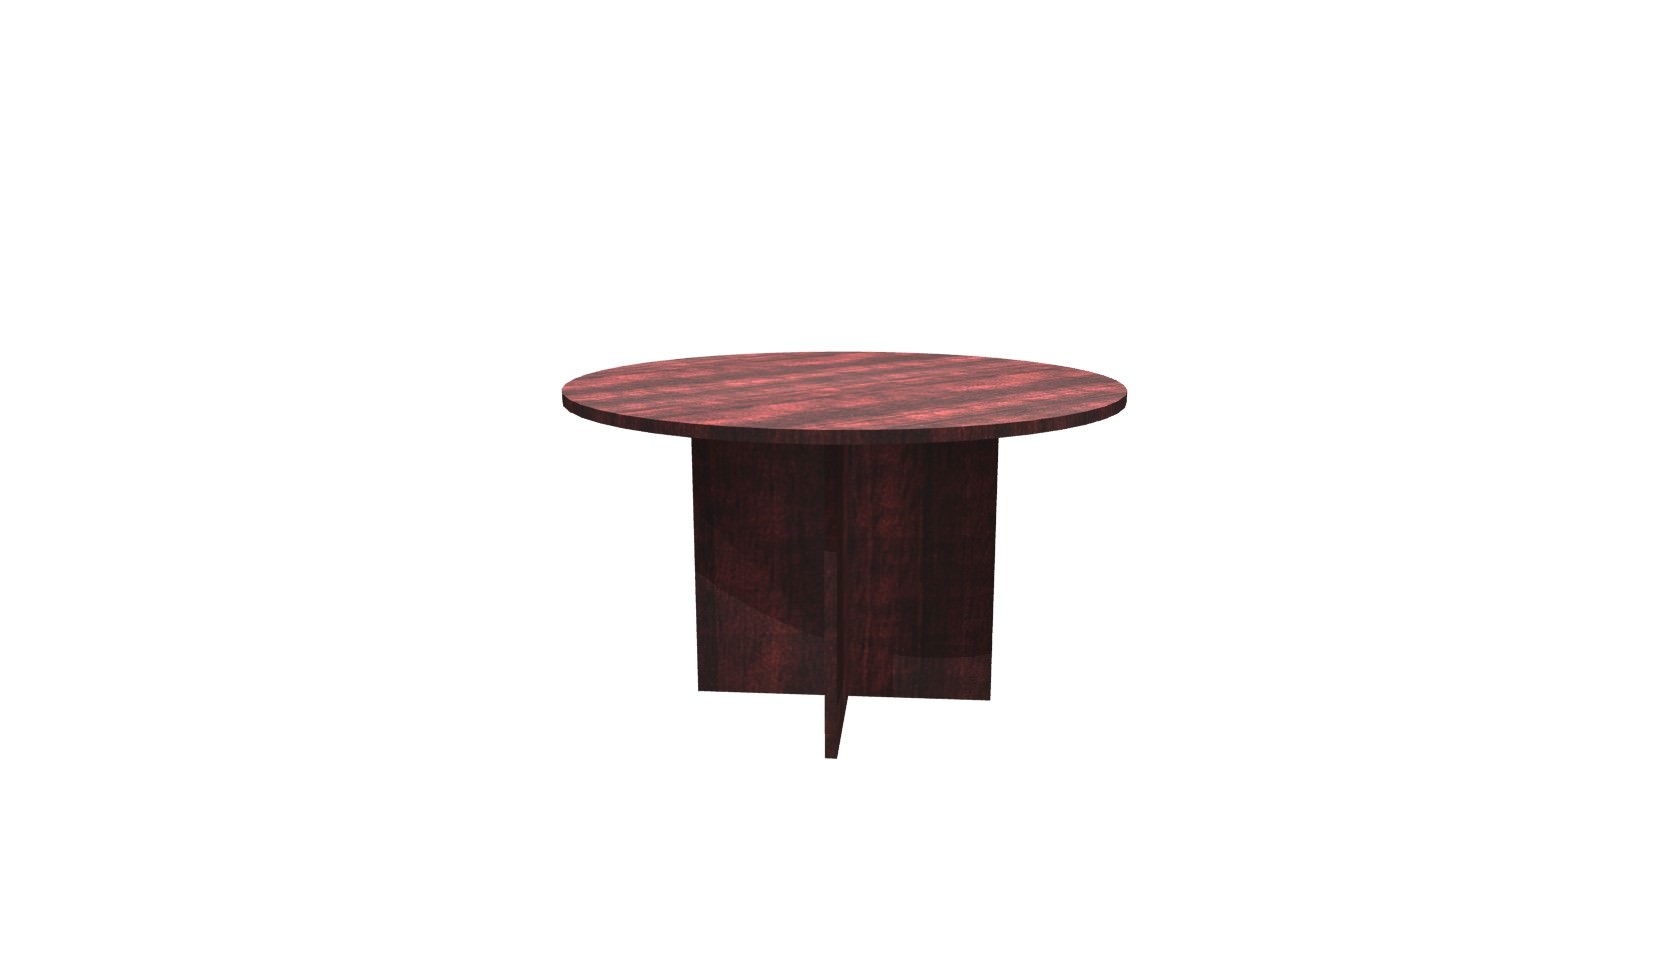 Inch Mahogany Round Conference Table - 48 inch round conference table